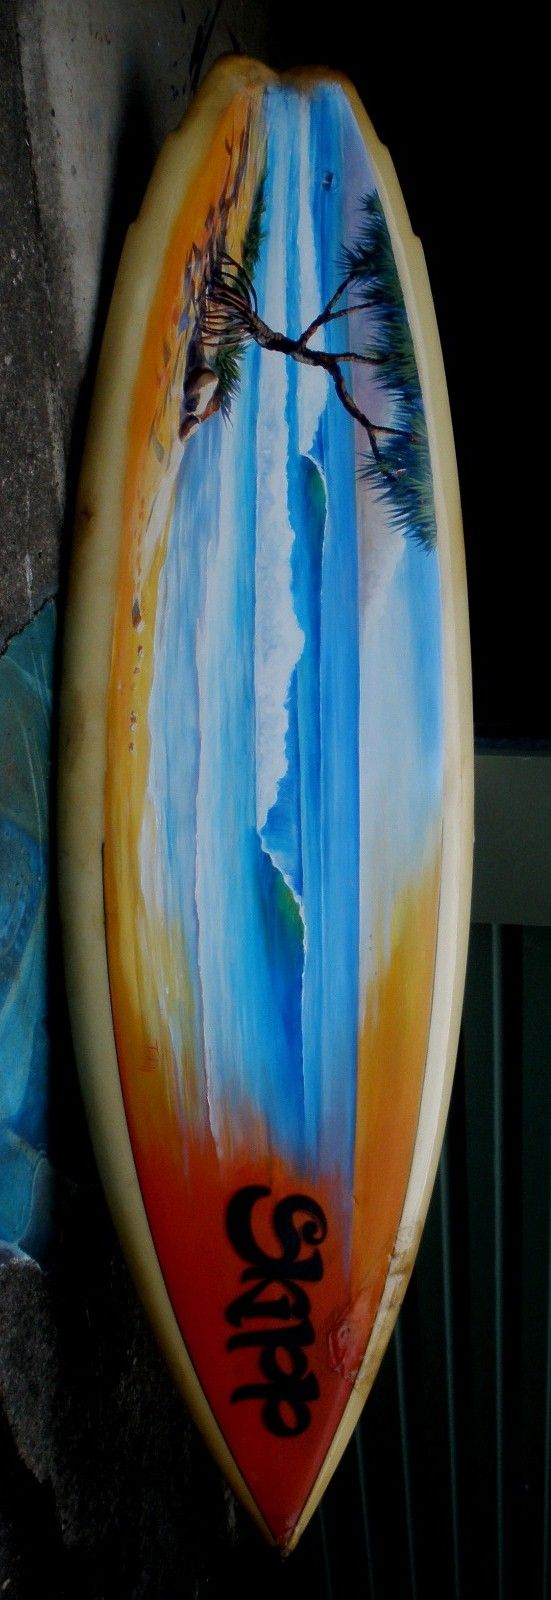 21 best images about painted surfboard ideas on pinterest surf color blocking and wall art. Black Bedroom Furniture Sets. Home Design Ideas